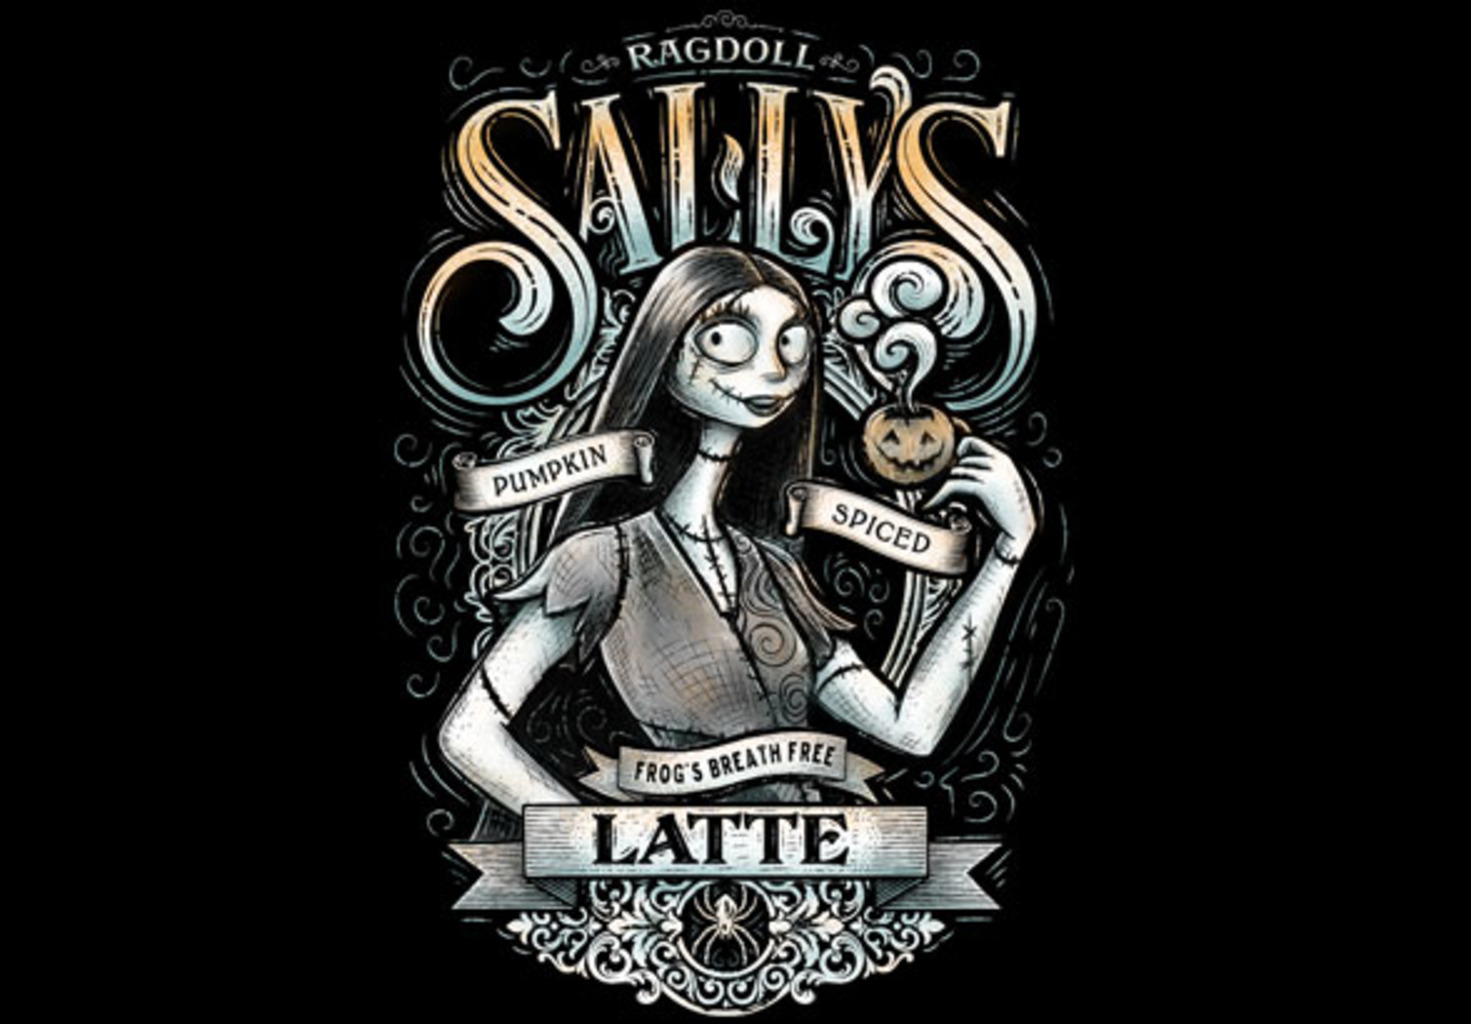 teeVillain: Ragdoll Sally's Latte